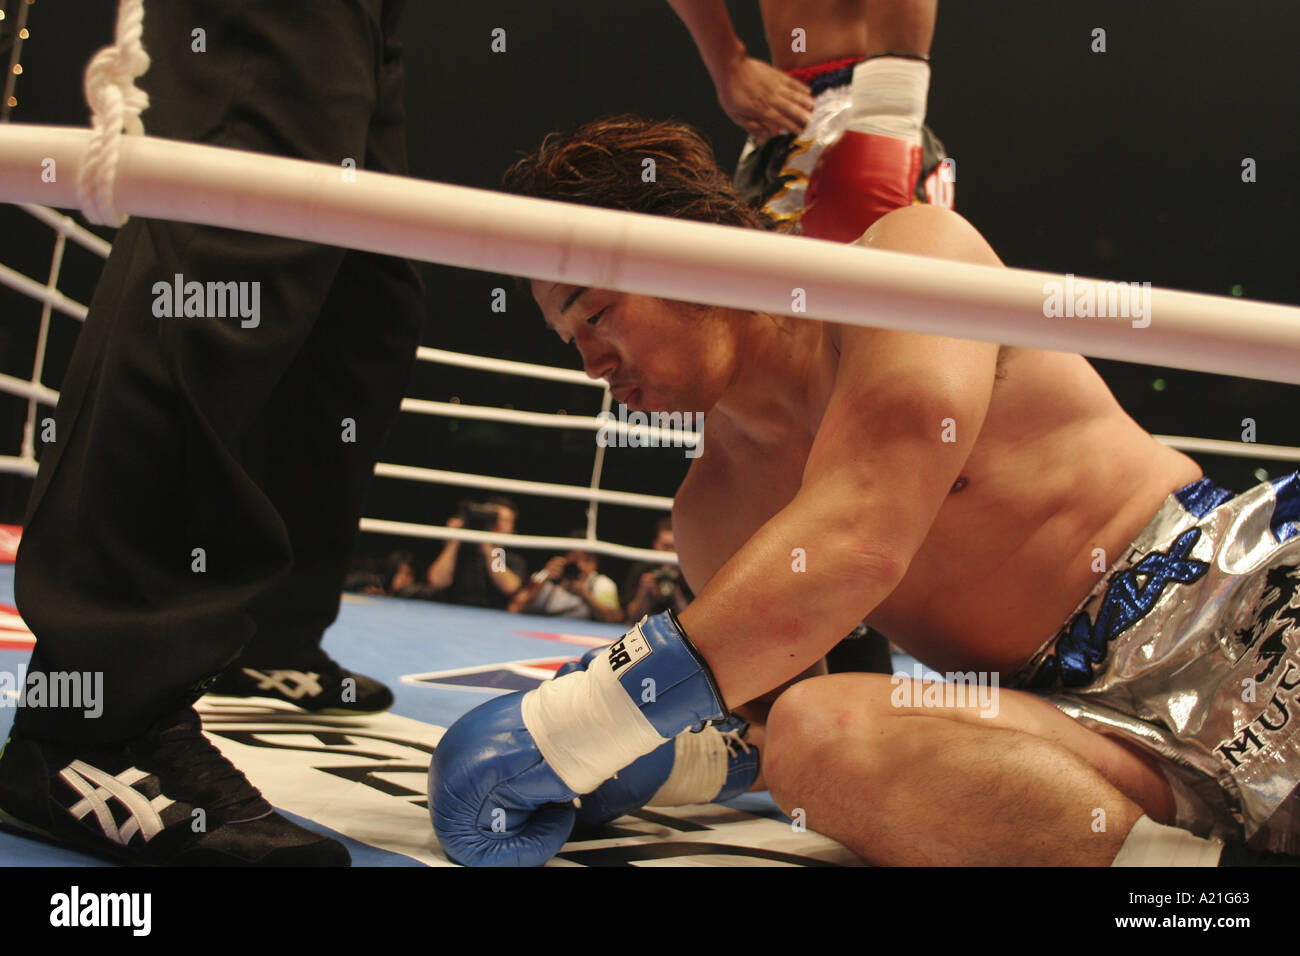 Musashi, a K1 fighter on the canvas after being knocked down, K1 World Gp 2004, Tokyo, Japan. - Stock Image